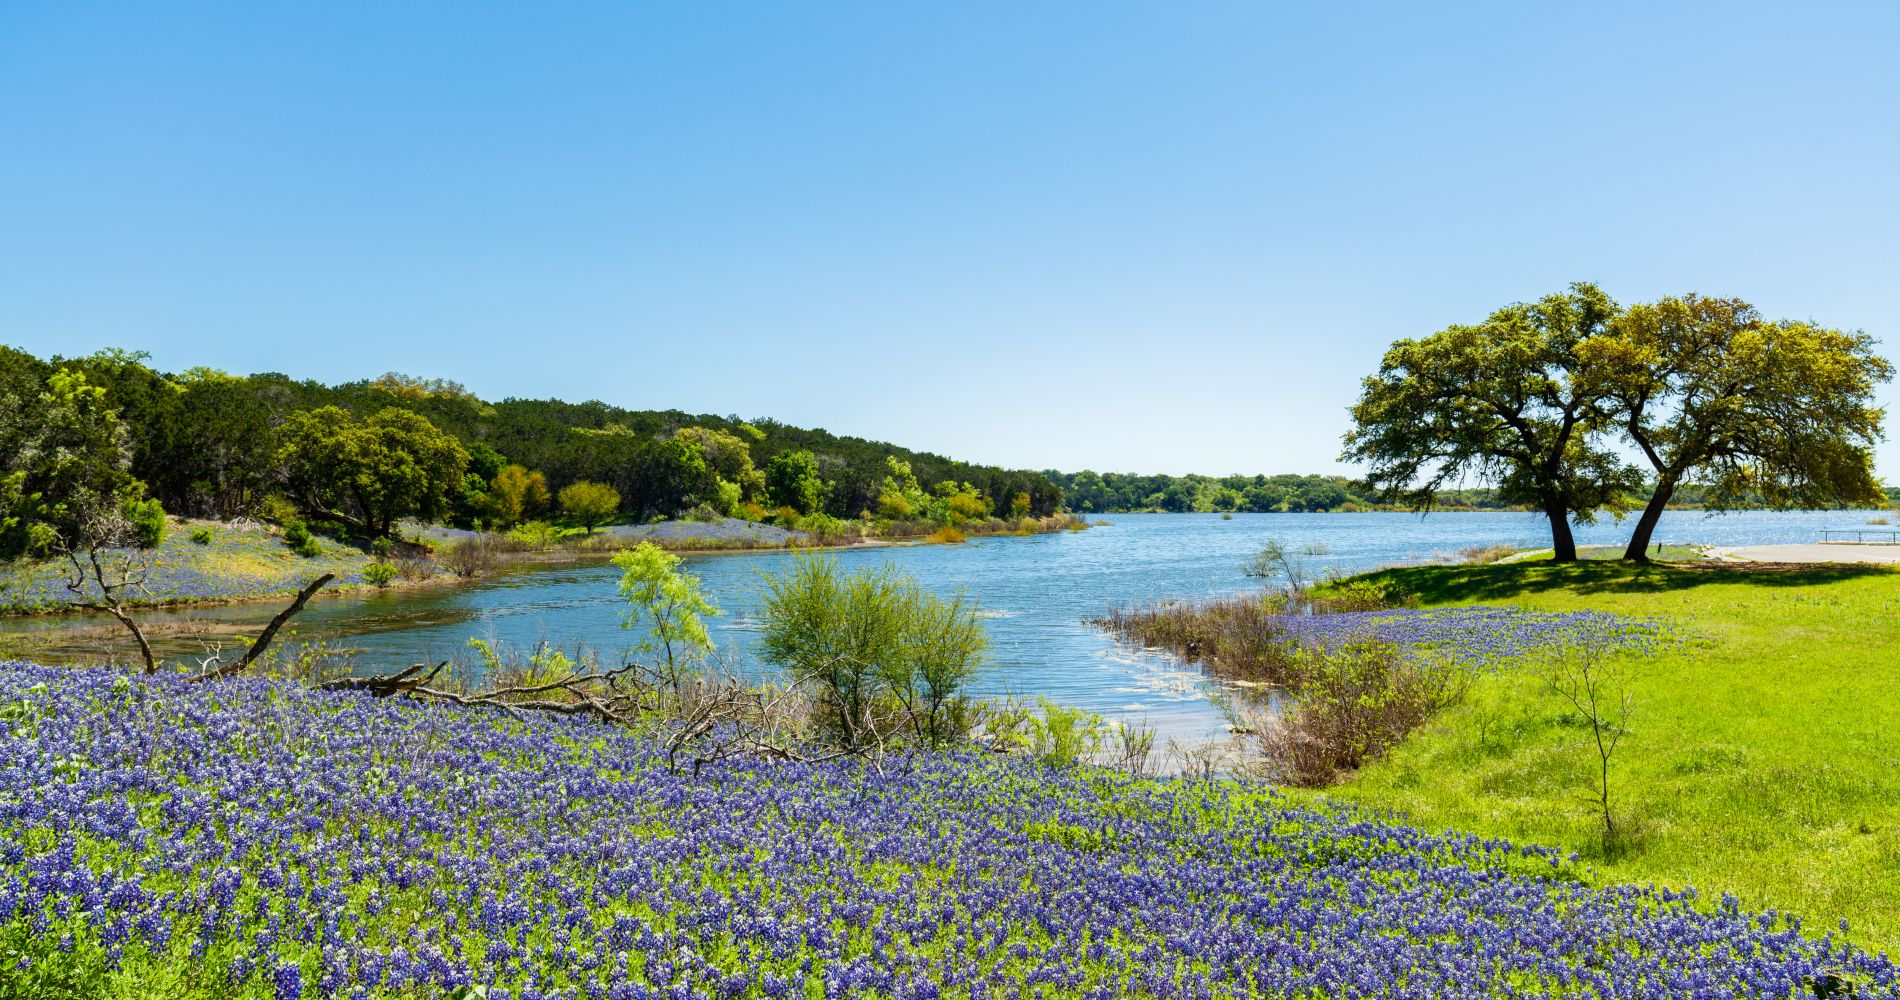 Texas Hill Country & LBJ Tour from Austin